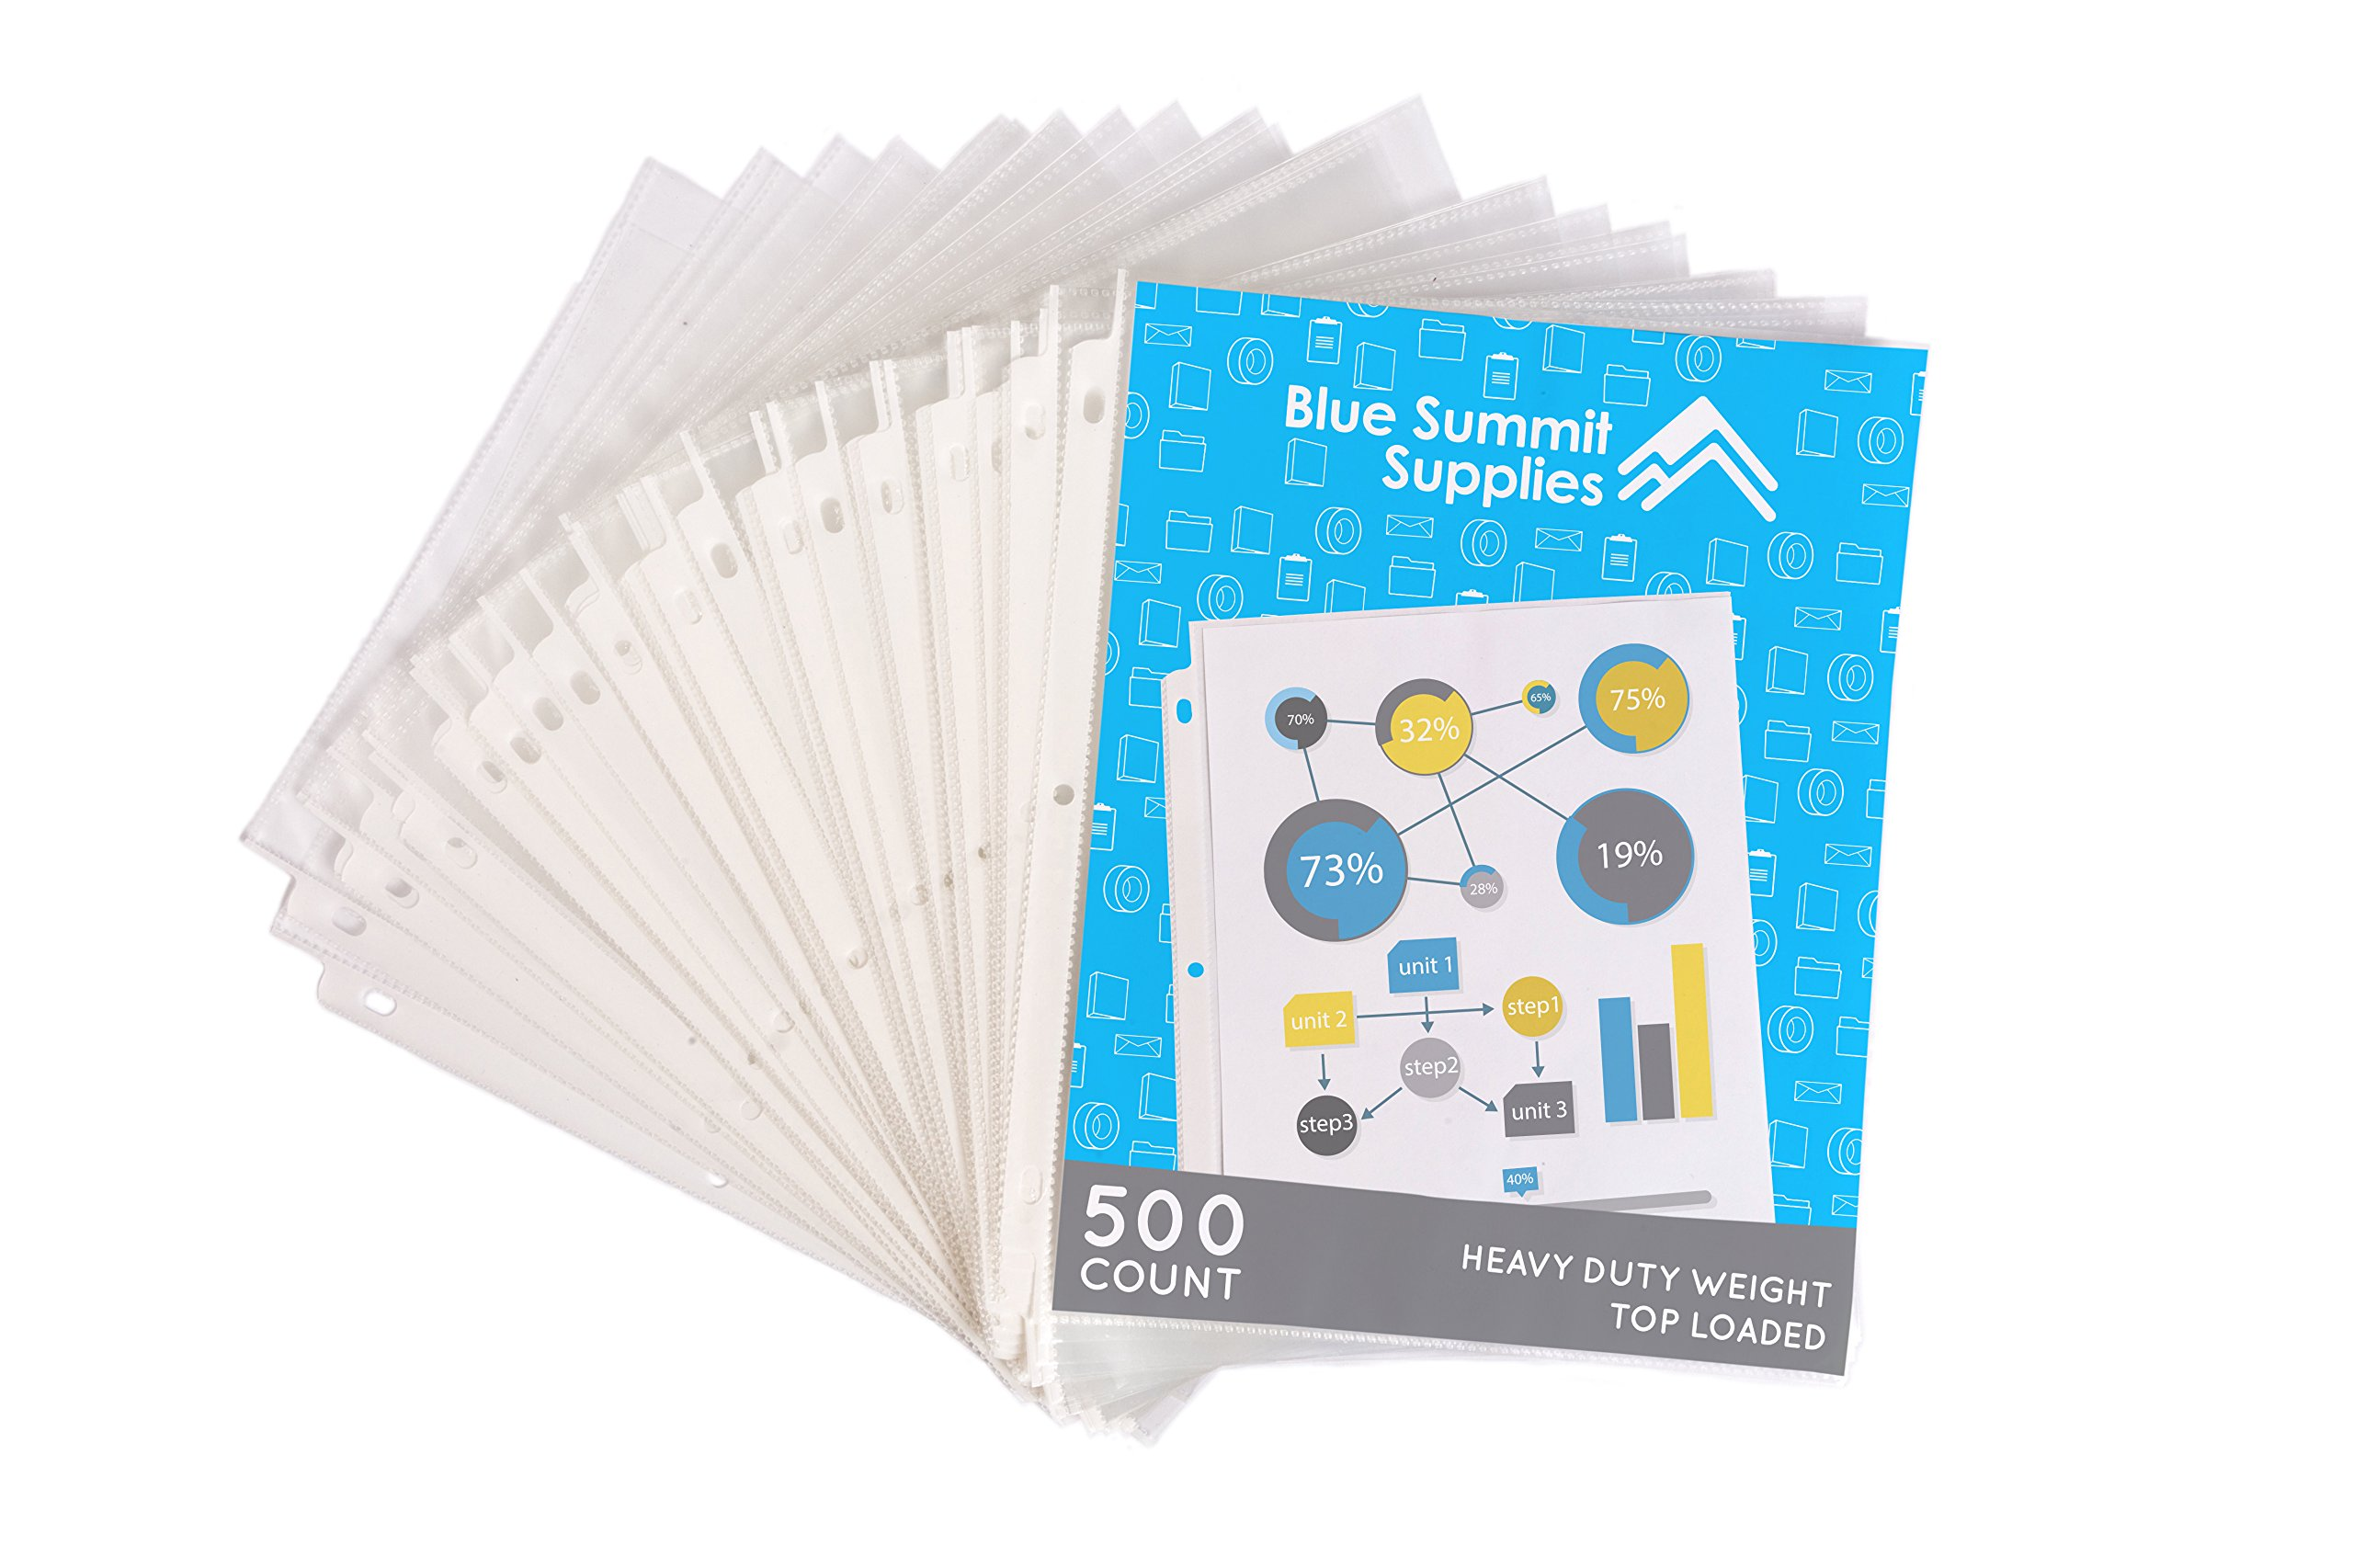 500 Heavyweight Sheet Protectors, Reinforced 3 Hole Design with 3 MIL Thickness, Fits Standard 8.5 x 11 Paper, 9.25 x 11.25 Top Loaded, 500 Pack by Blue Summit Supplies